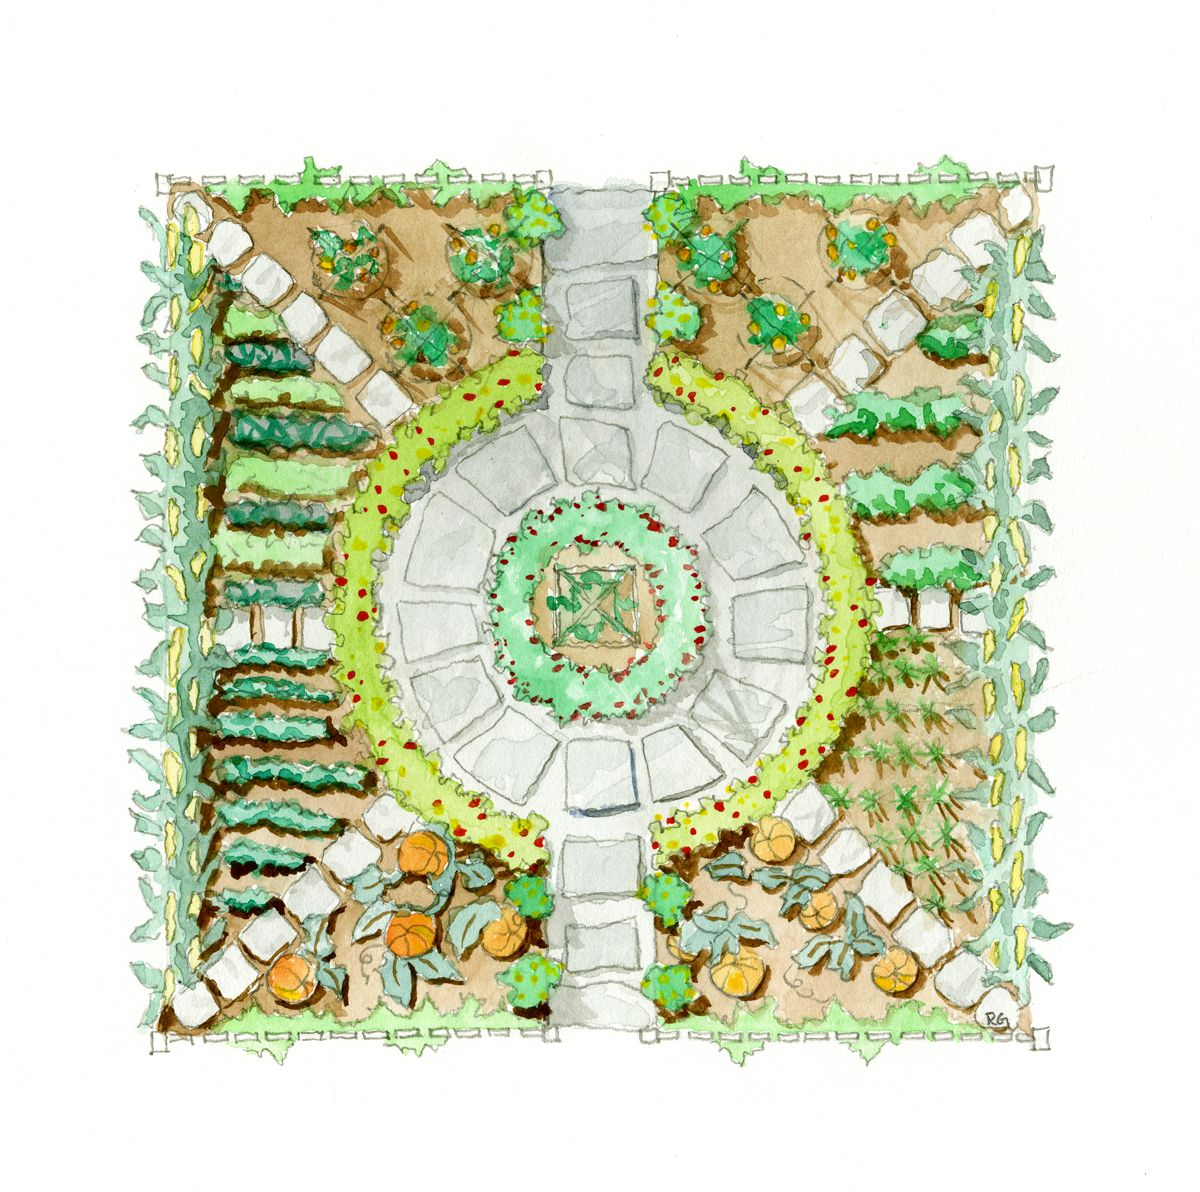 Layout Of Kitchen Garden Childrens Garden By Ellen Ogden In Her Book The Complete Kitchen